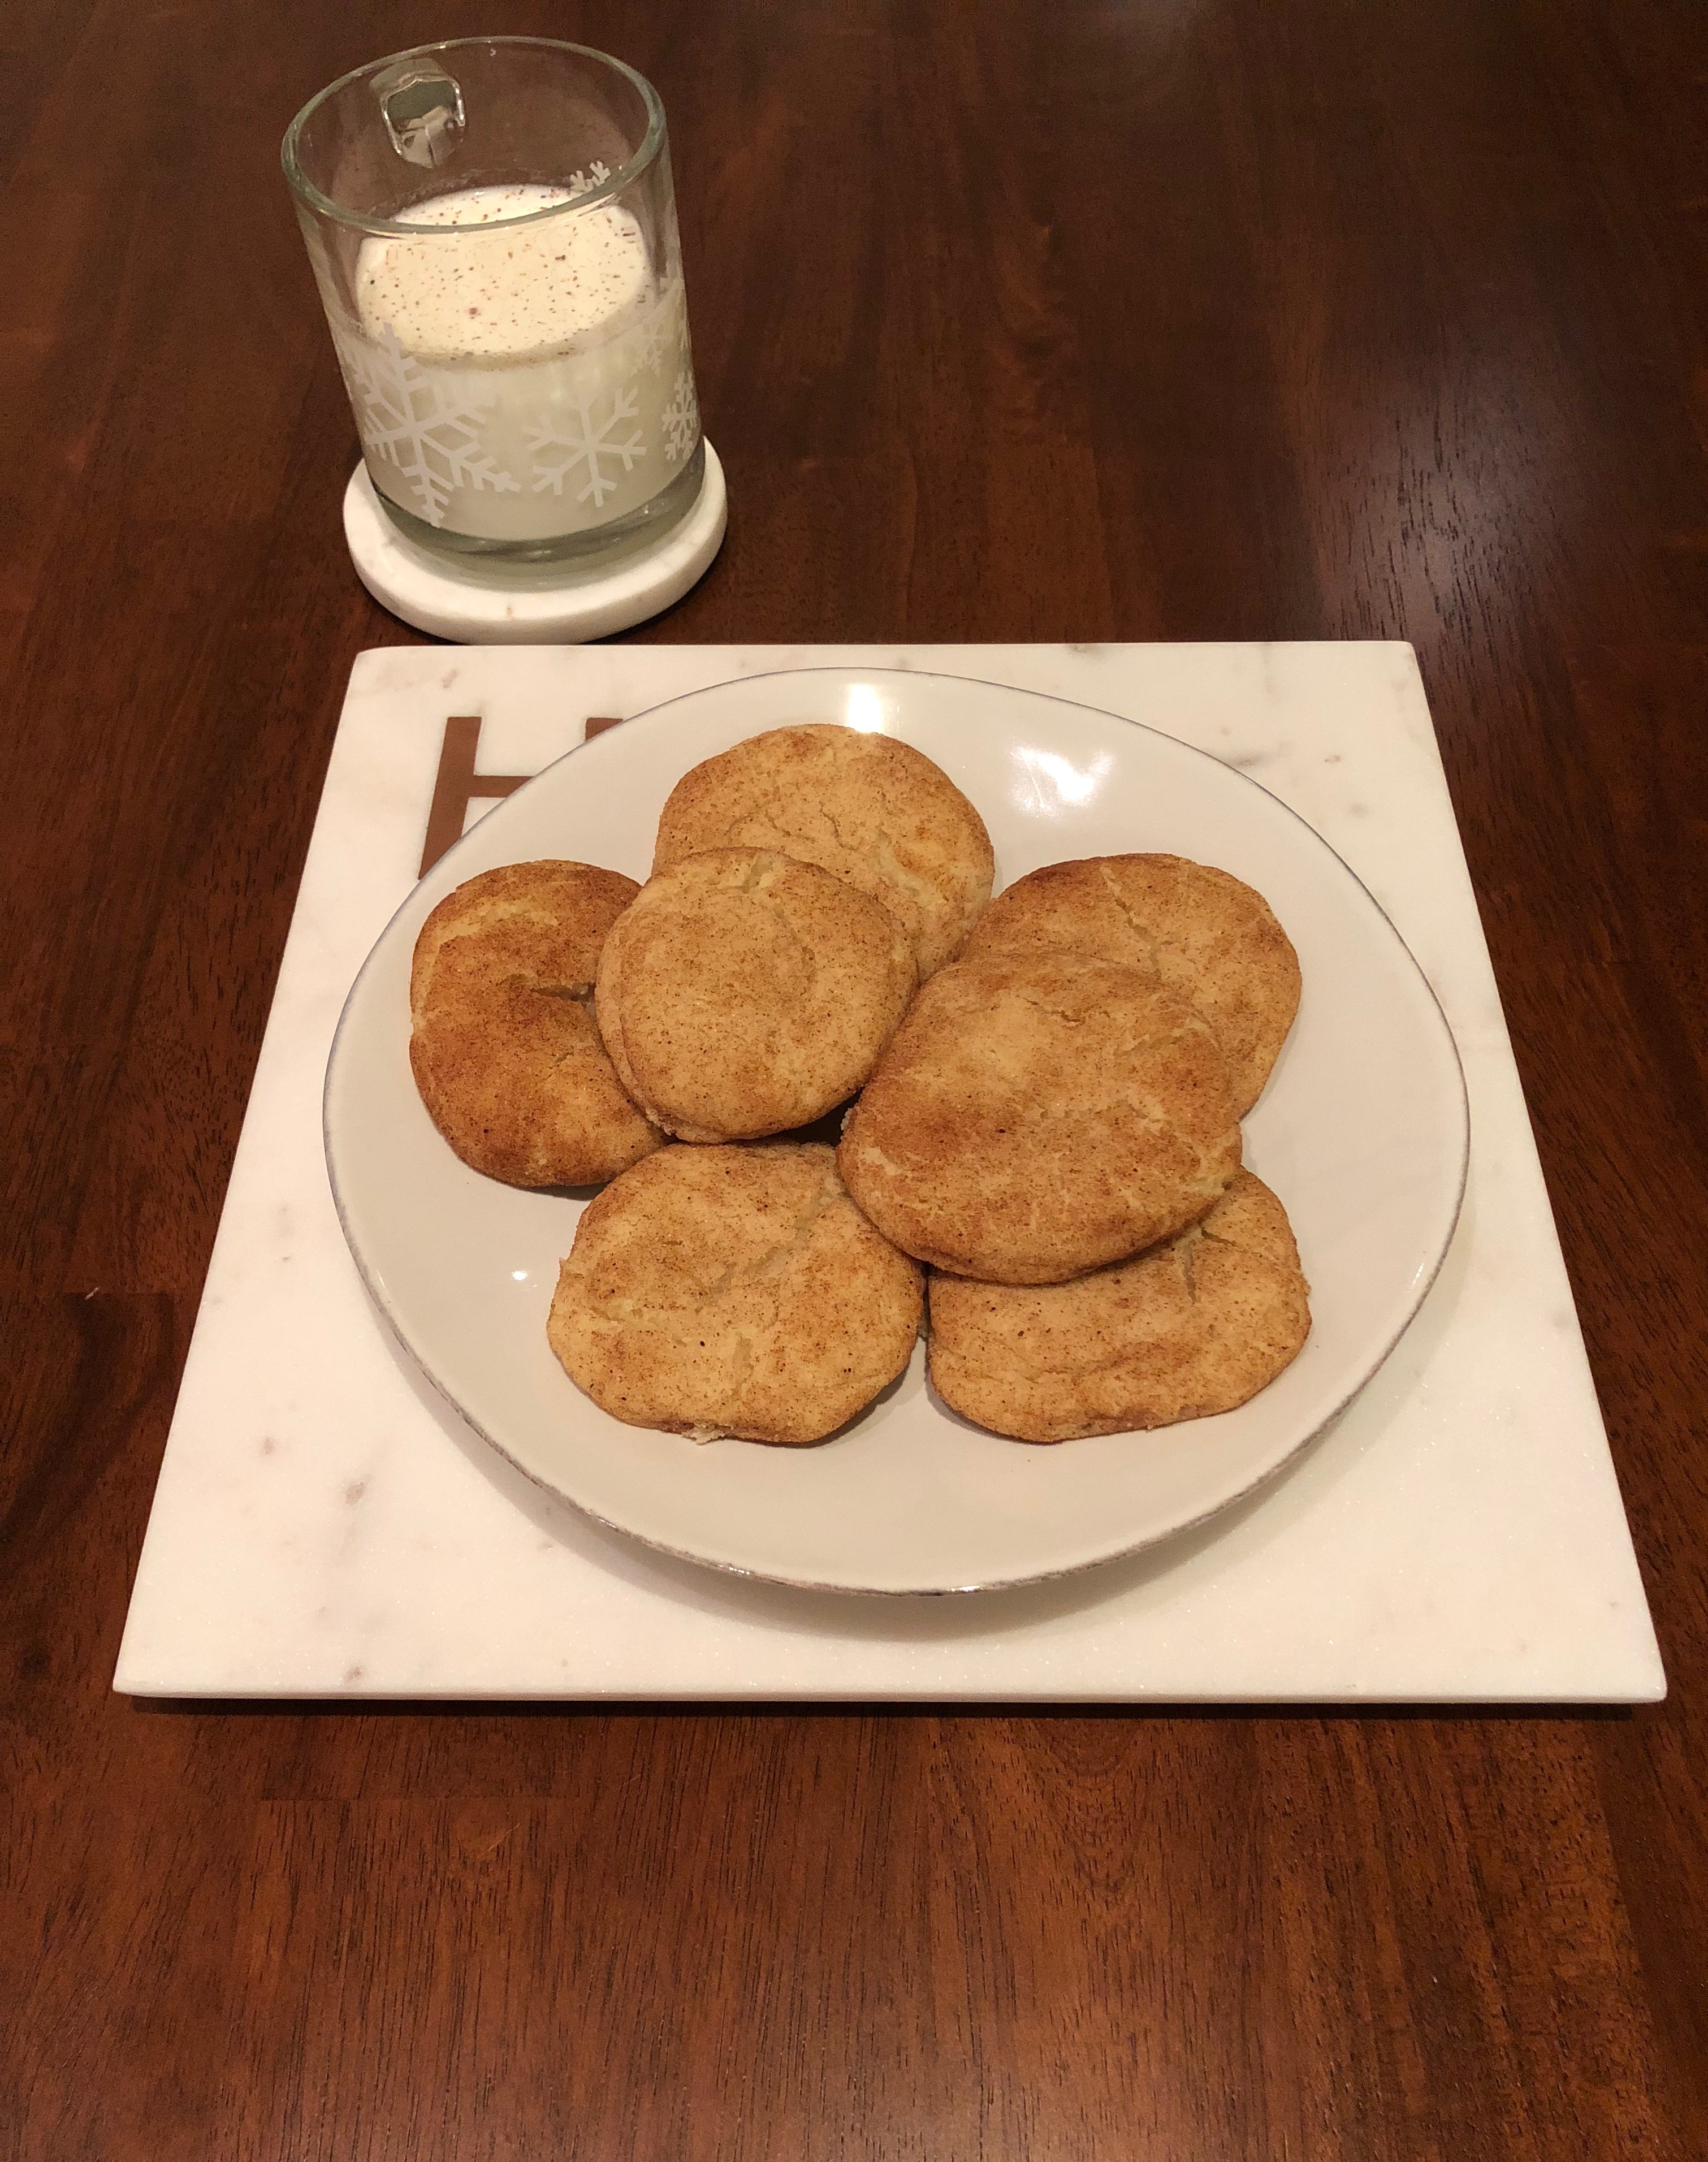 Plate of snickerdoodles and glass of milk with nutmeg